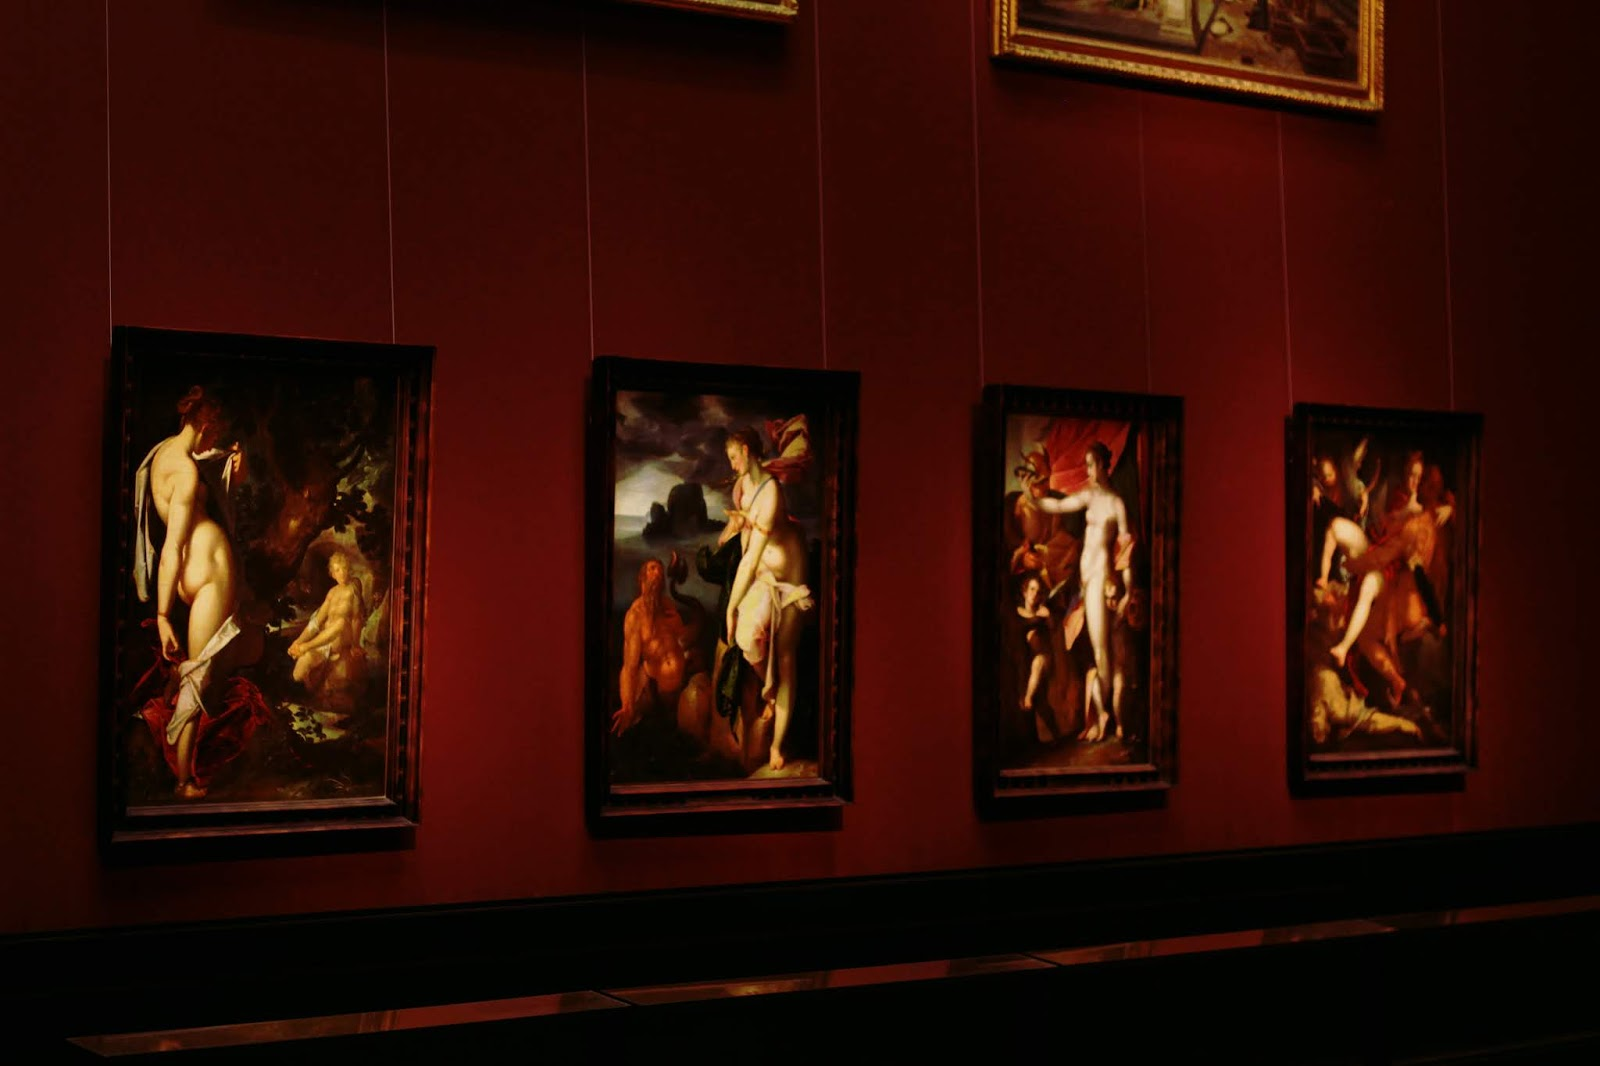 filipa canic, youarethepoet, you are the poet blog, filipa canic blog, kunsthistoriches museum vienna, art history museum, art,